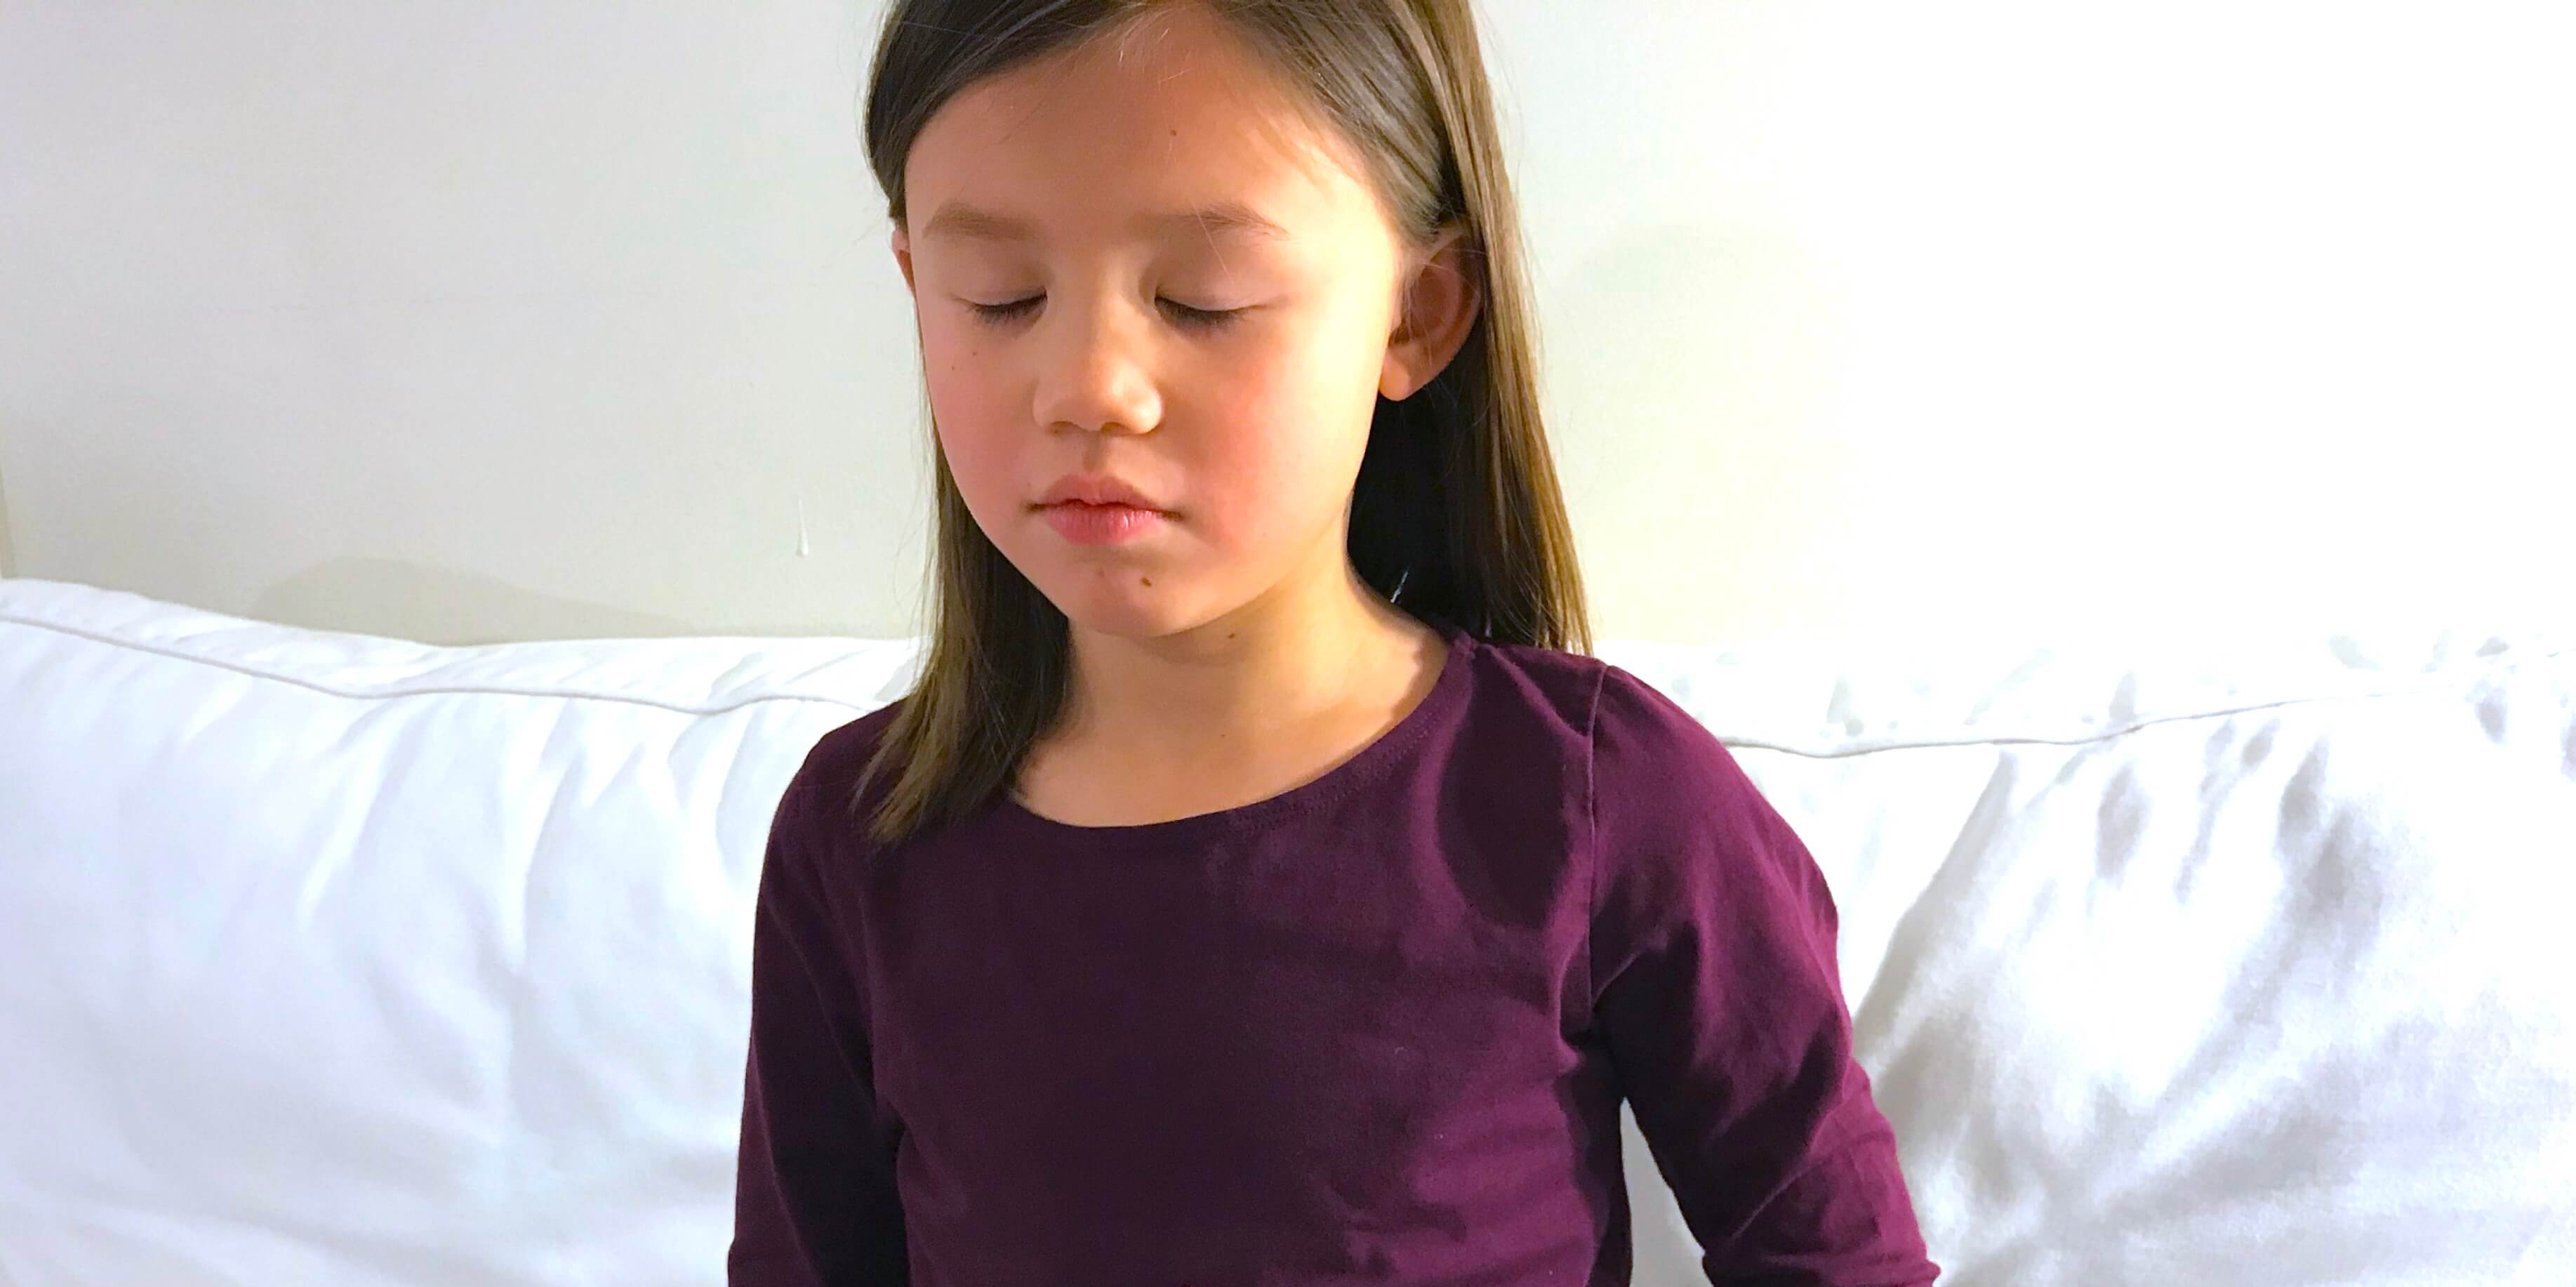 Two Bellies, Two Hands, Two Breaths - Mindful Schools